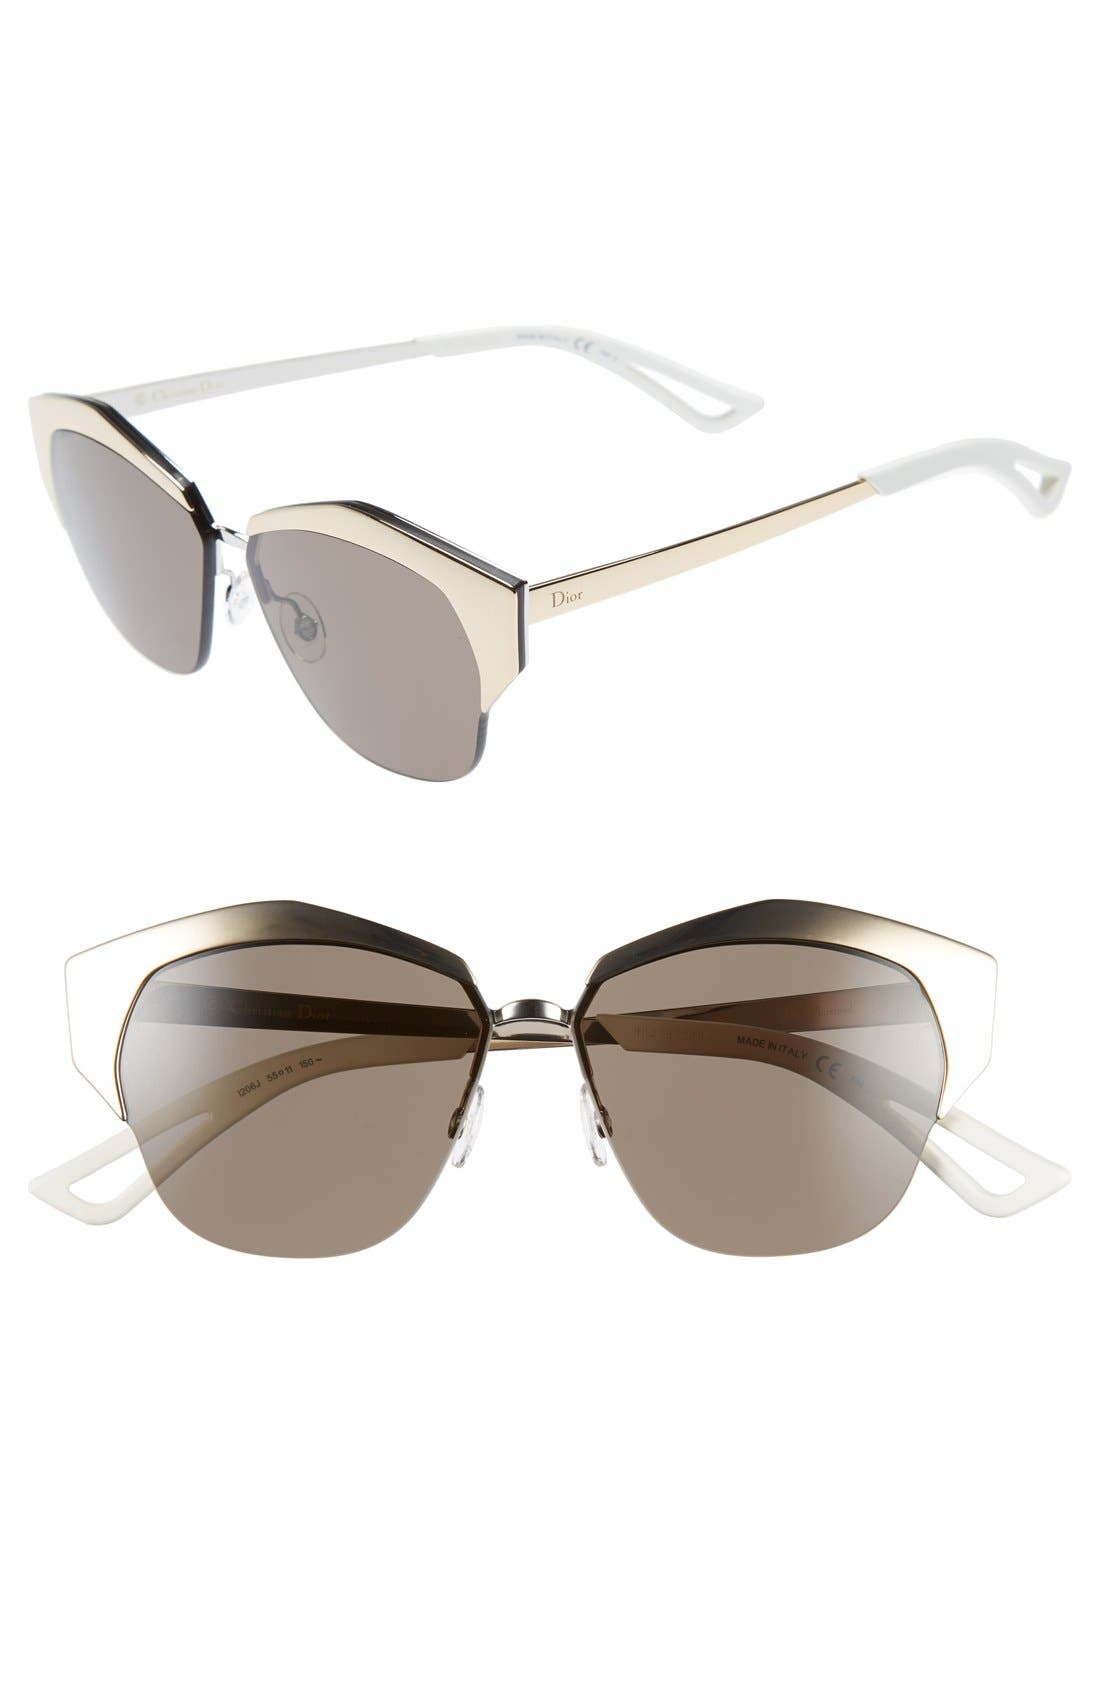 Alternate Image 1 Selected - Dior 'Mirrors' 55mm Cat Eye Sunglasses (Regular Retail Price: $490.00)